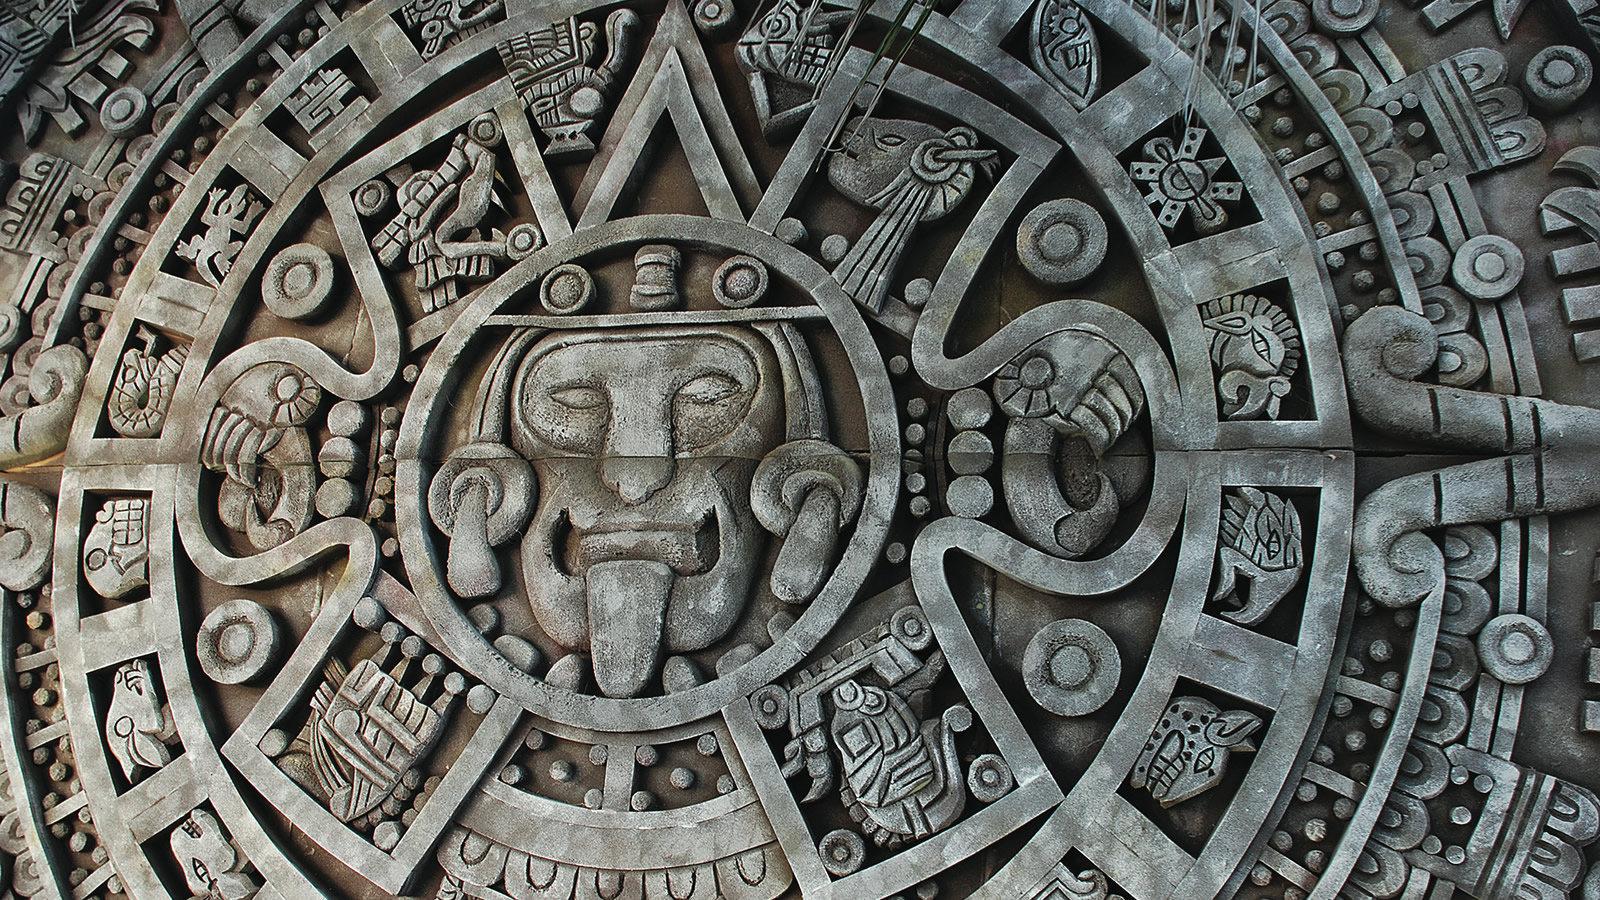 Stone Carving Mayan-Style in Mexico